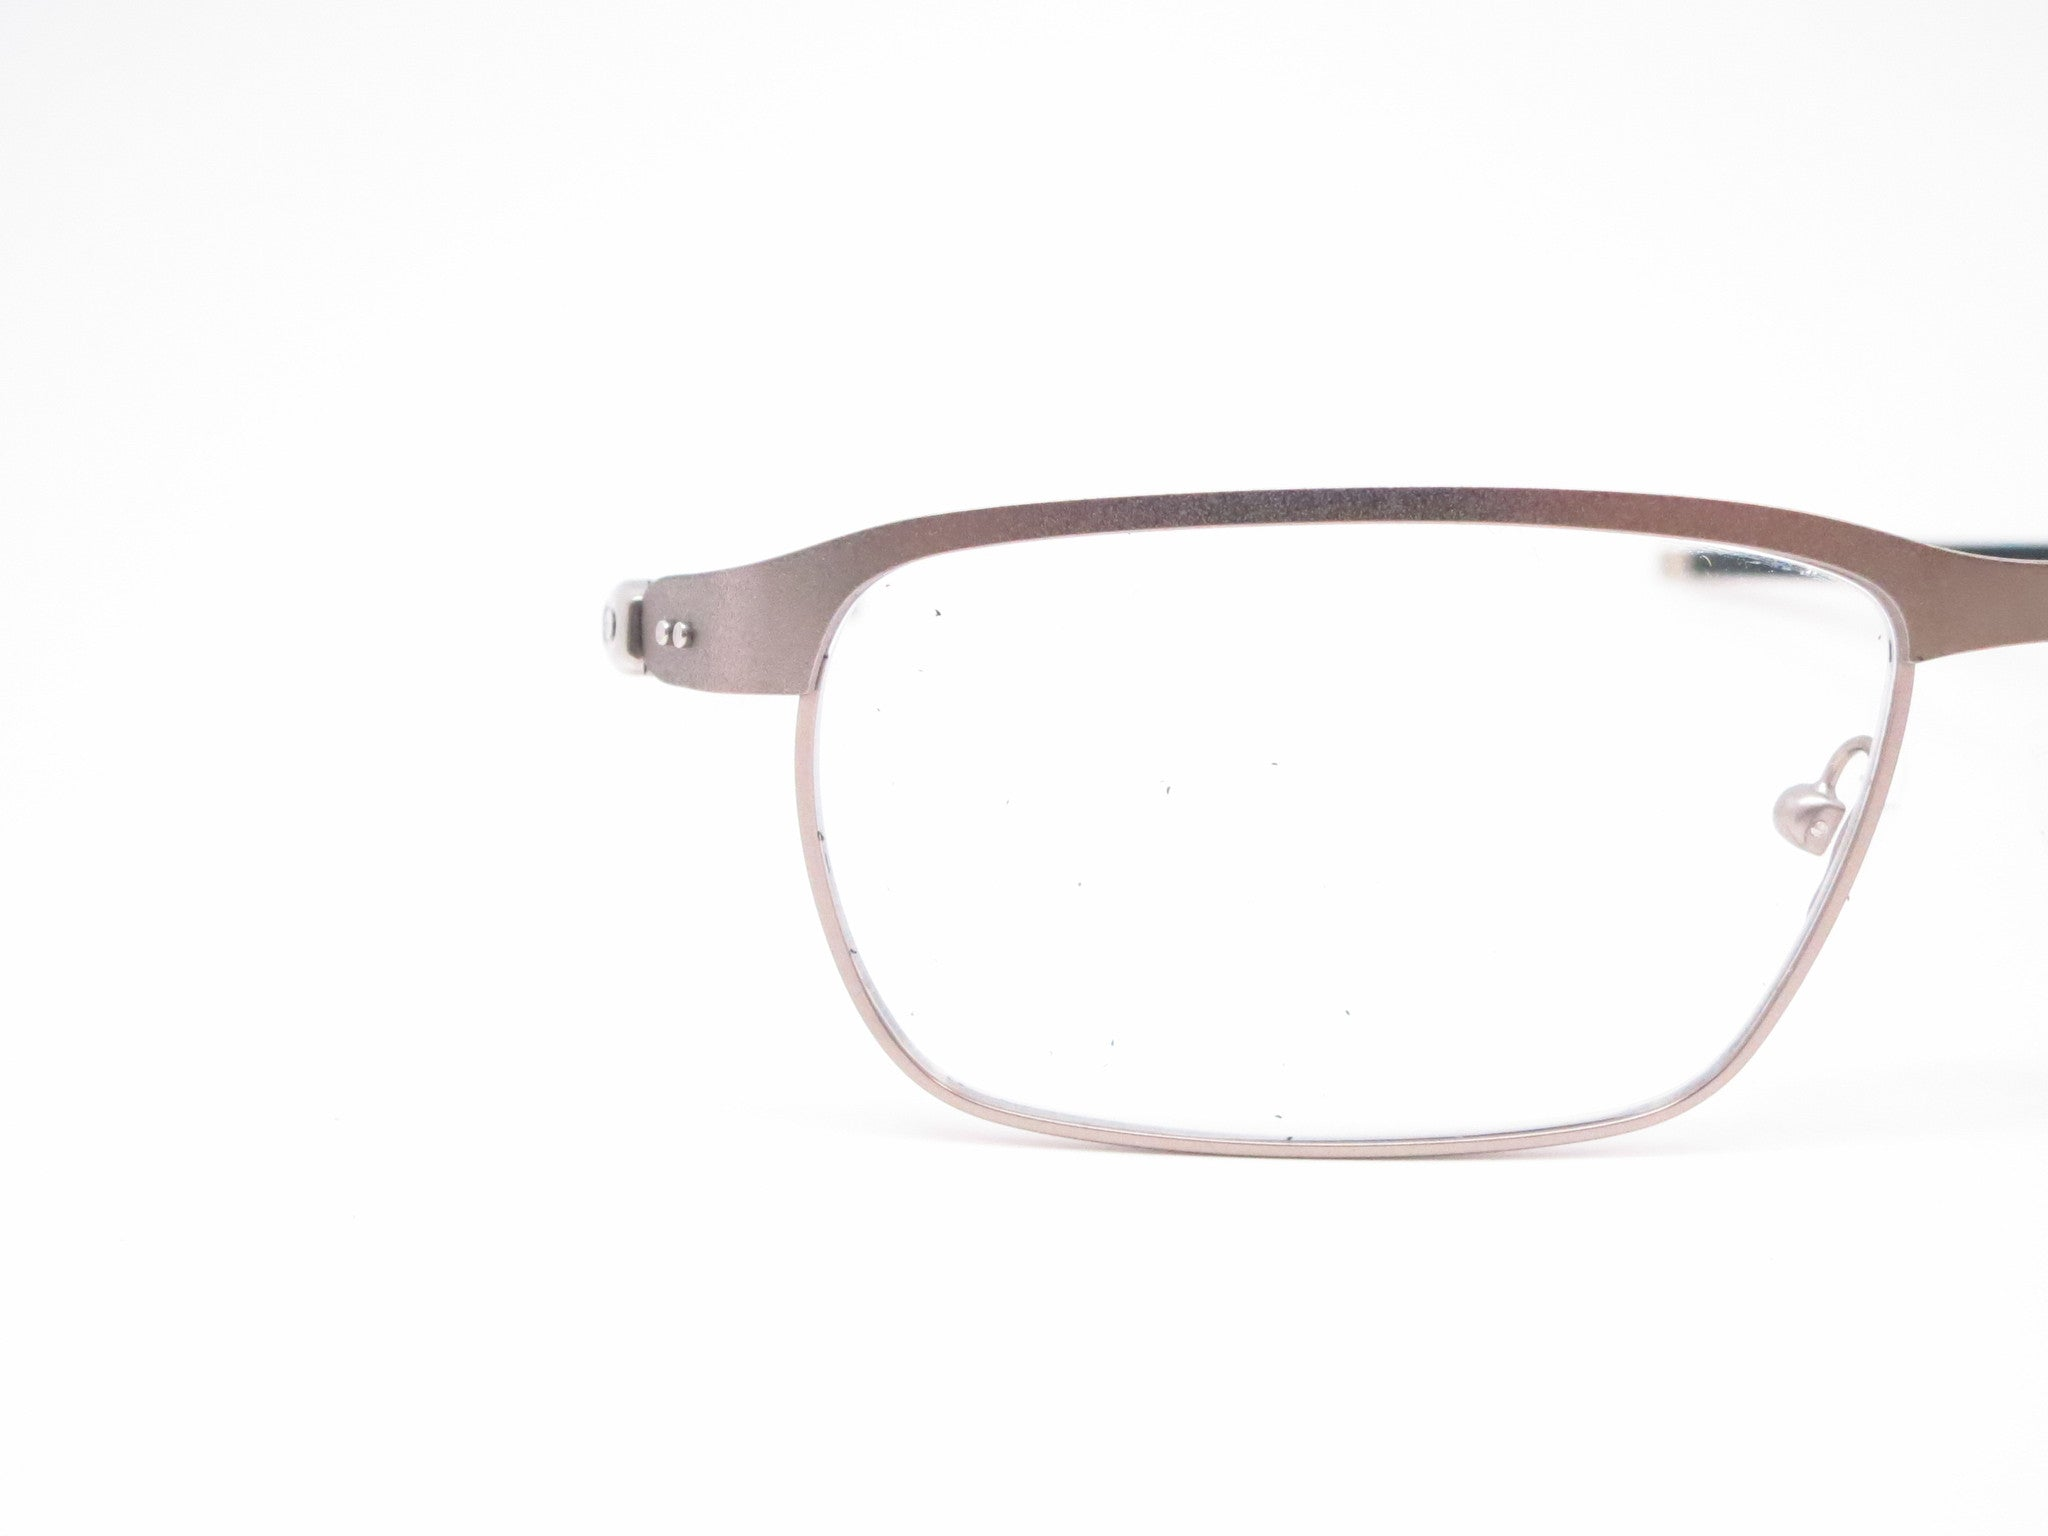 7d91459c35 ... Oakley Tincup OX3184-04 Powder Steel Eyeglasses - Eye Heart Shades -  Oakley - Eyeglasses ...